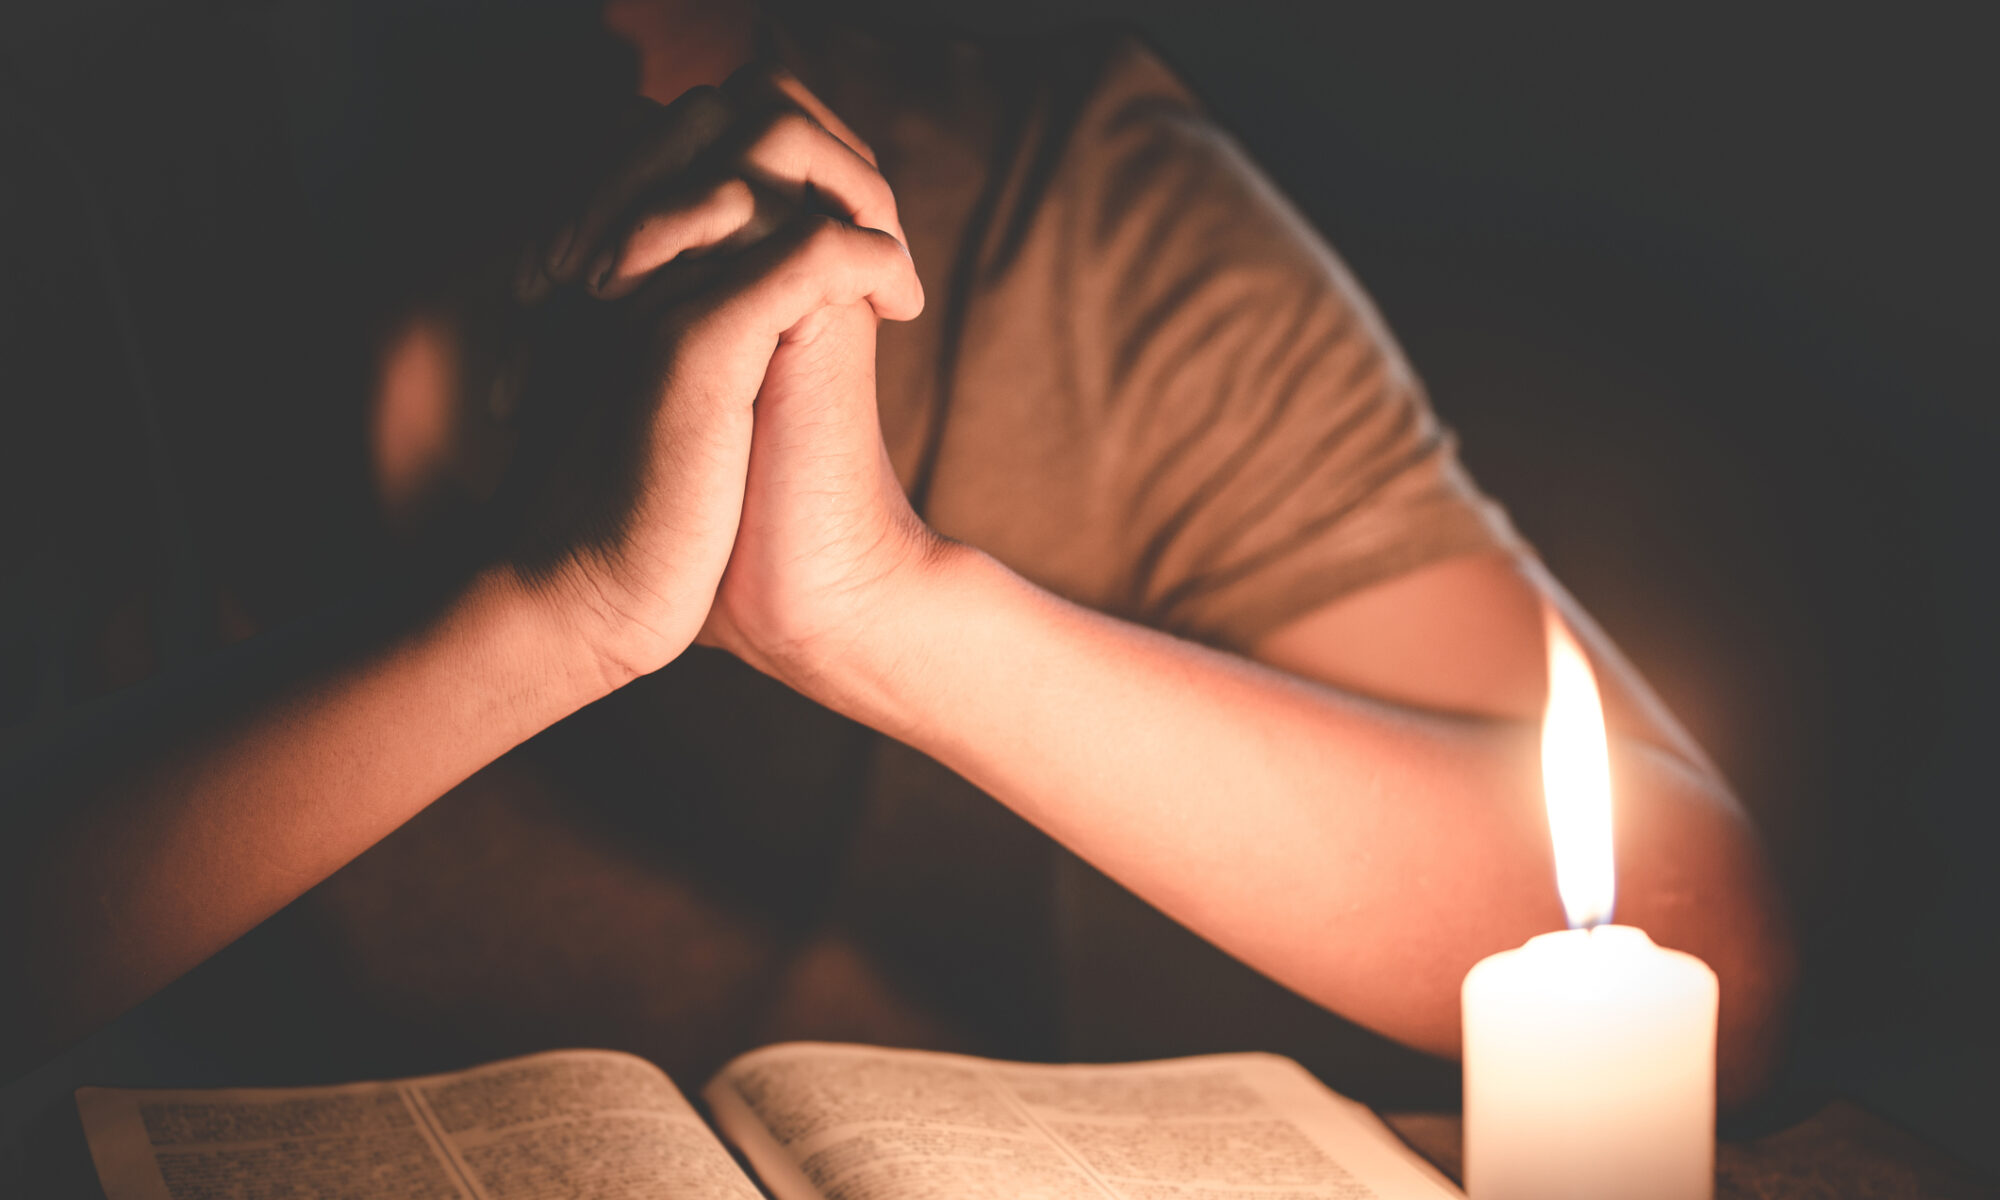 A person studying the Bible